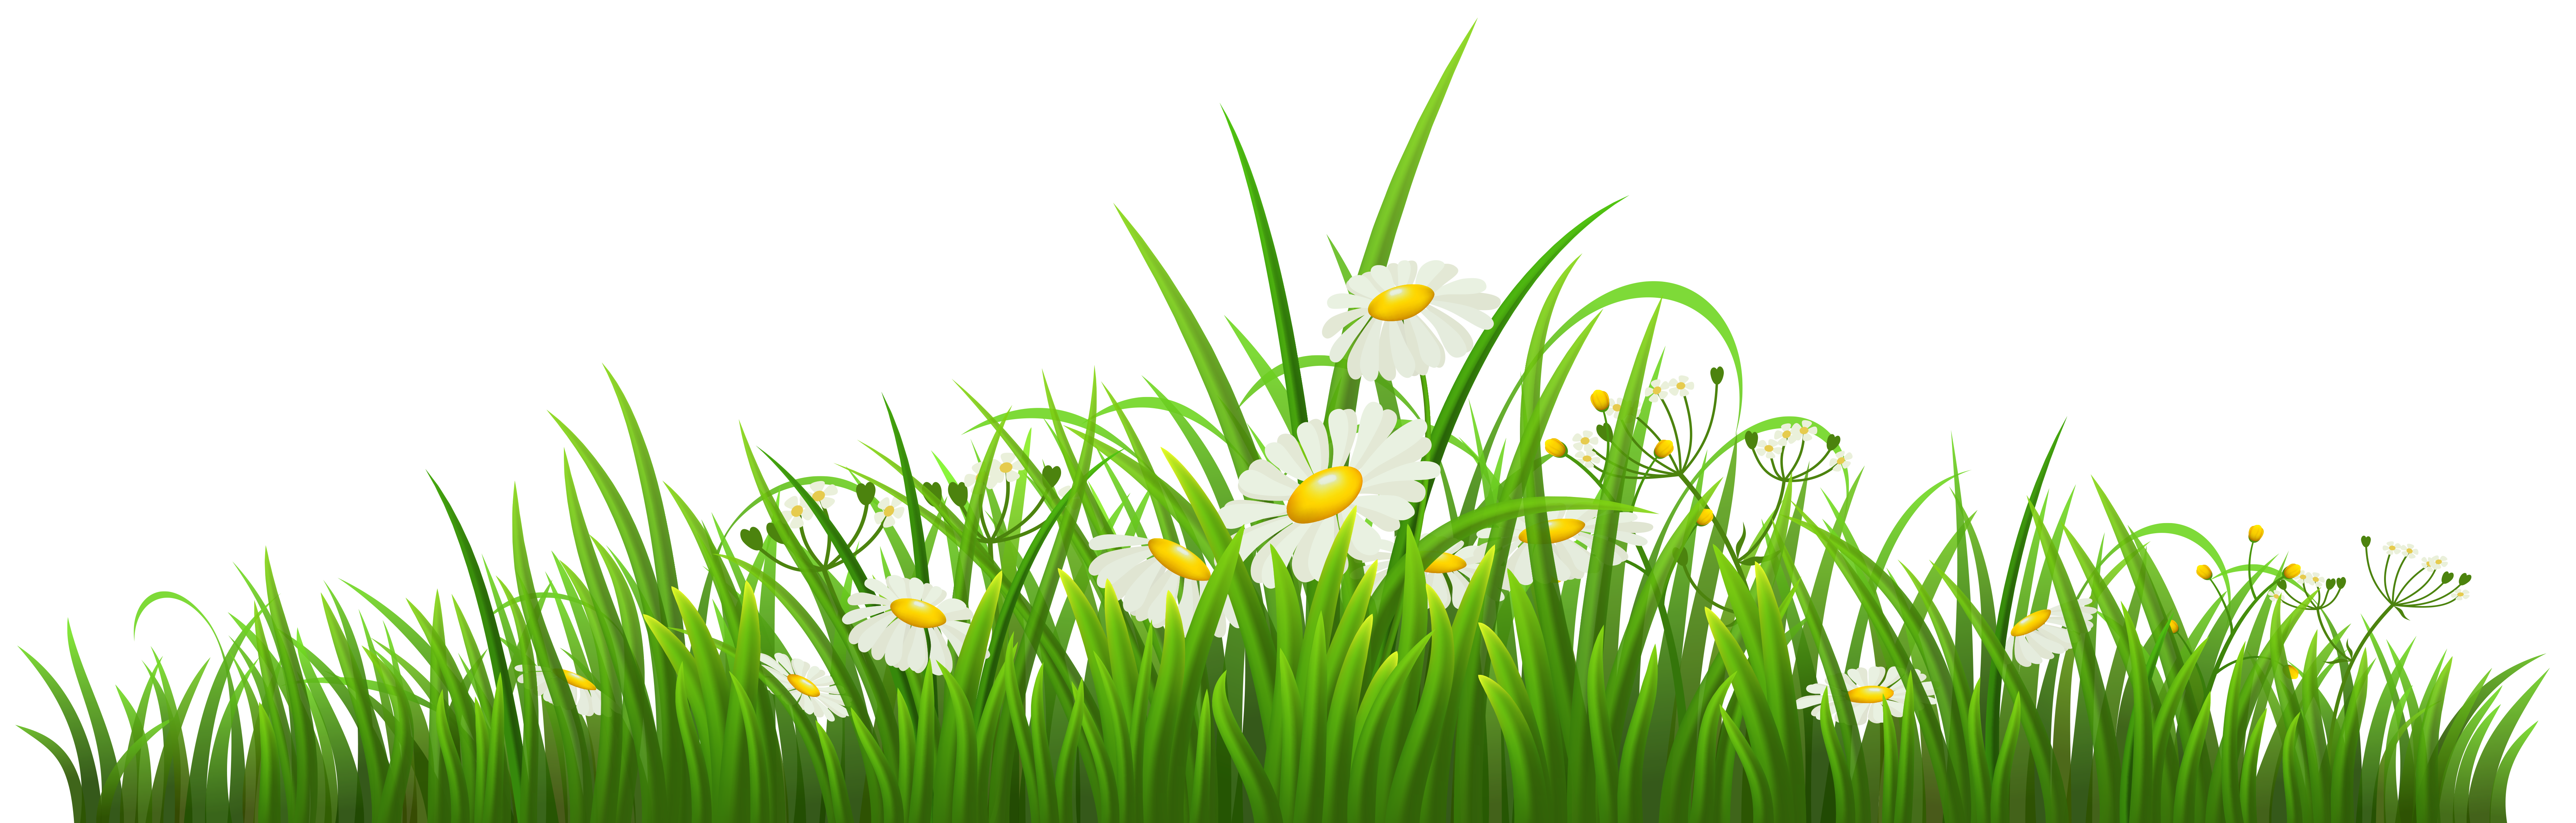 Clipart grass illustration. Transparent with chamomile png